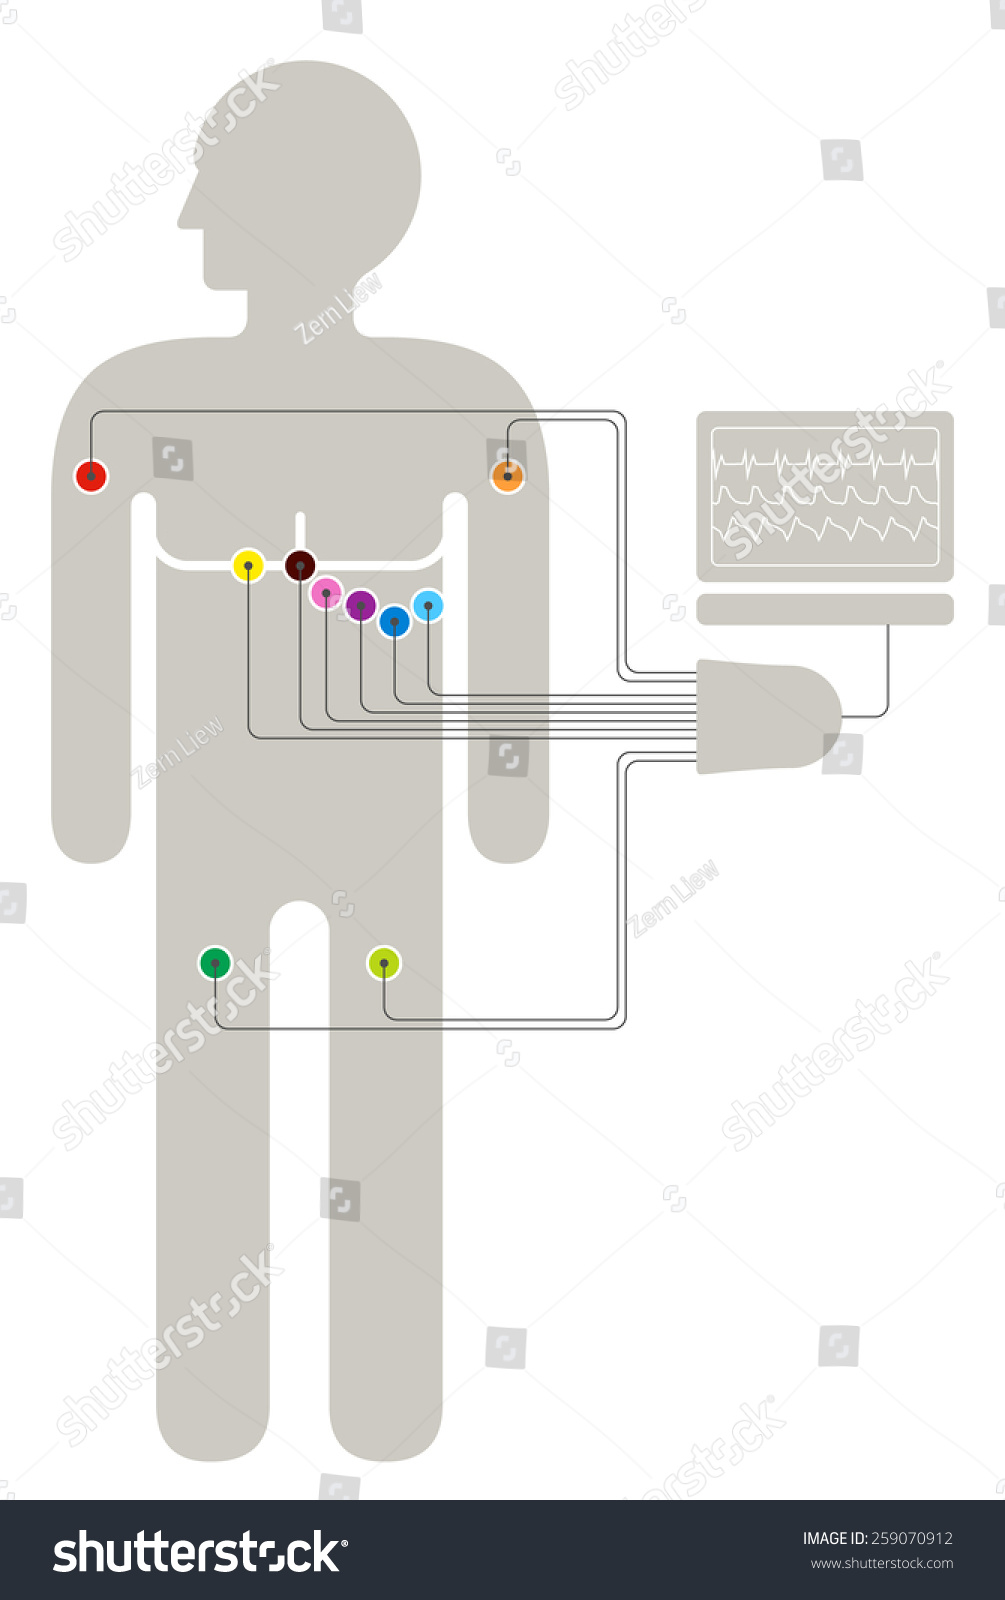 ECG wiring diagram showing 6+2+2 colour-coded sensors connected to a